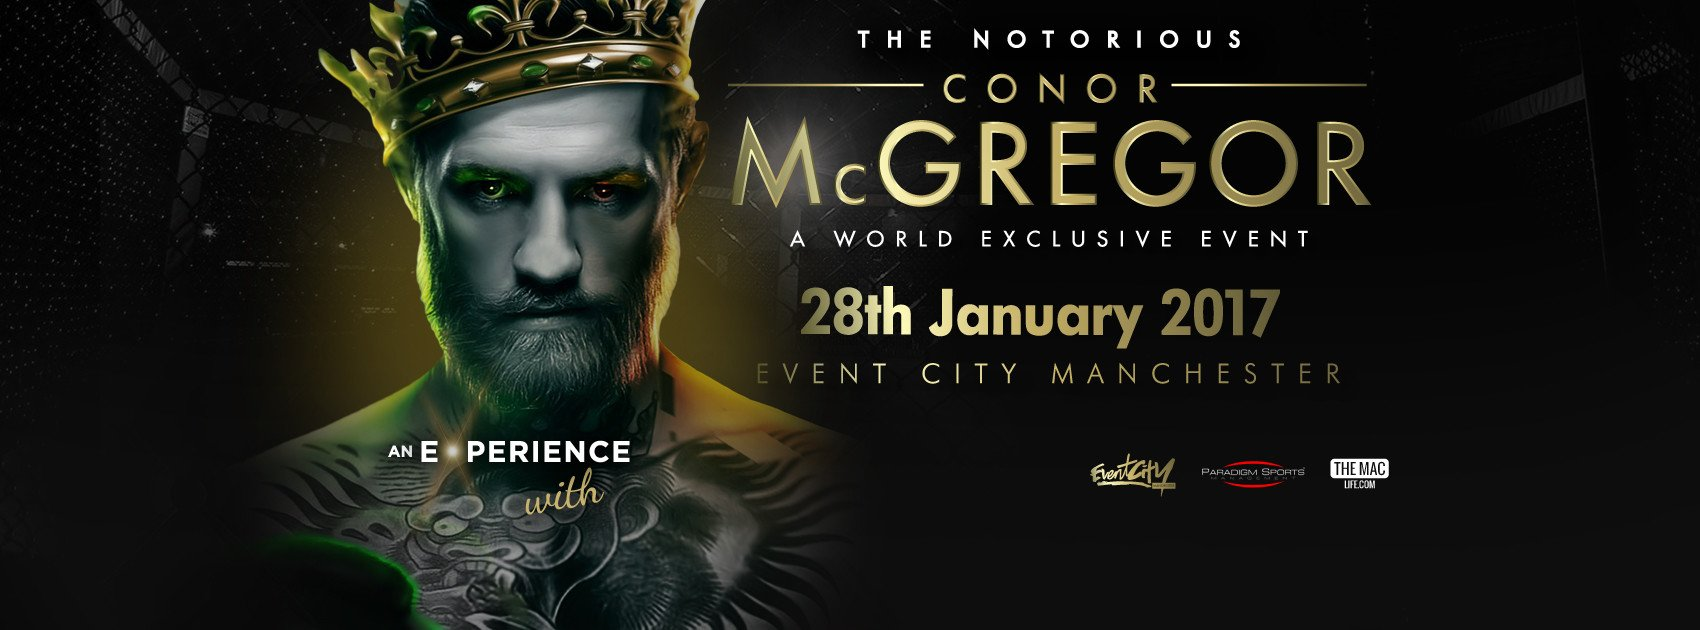 An Experience With Conor McGregor